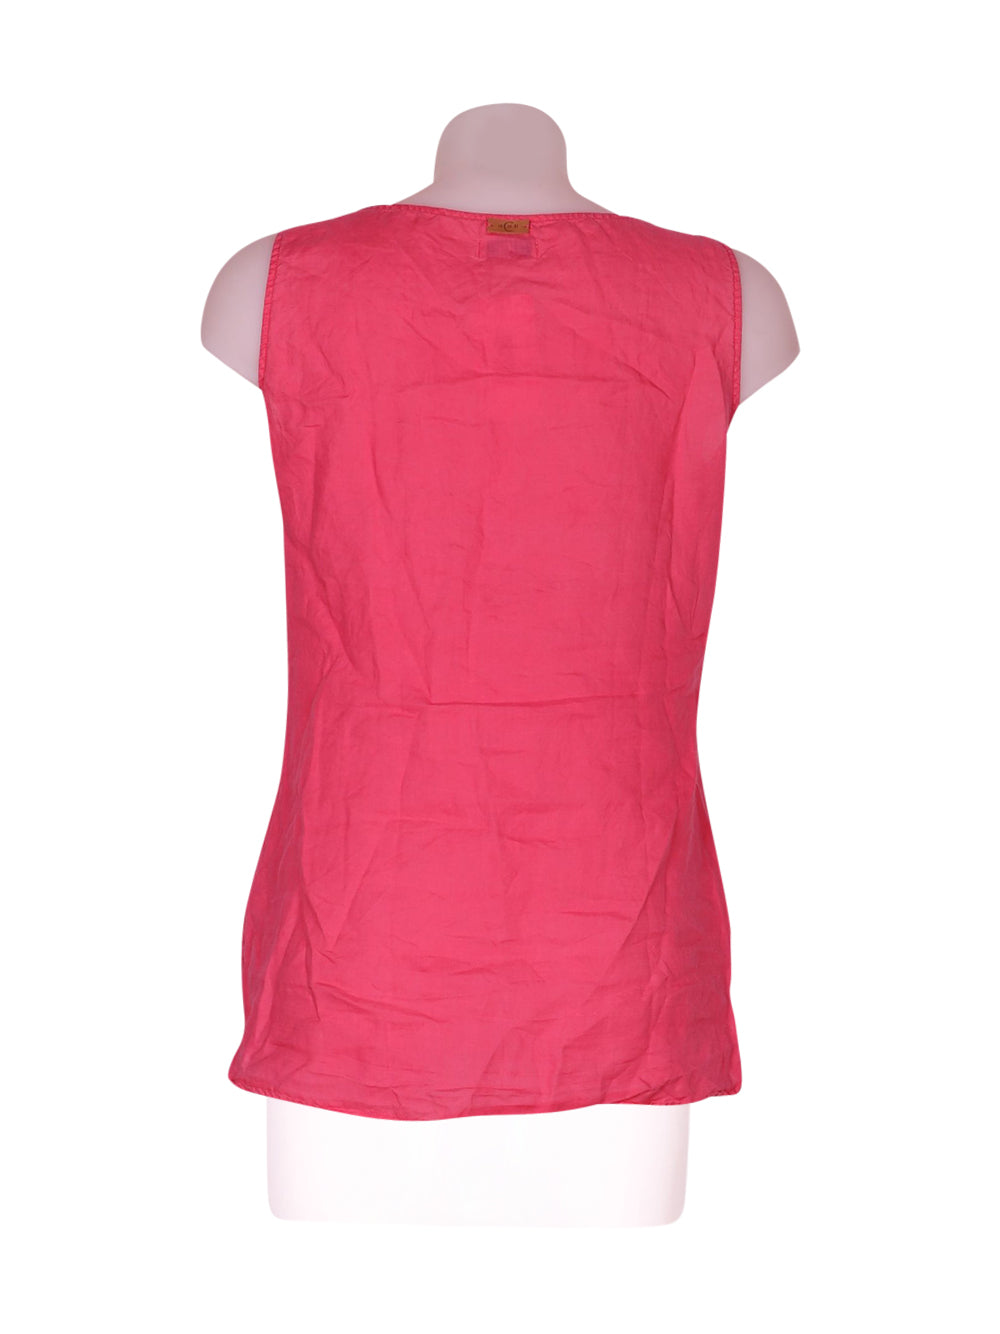 Back photo of Preloved Cerruti 1881 Pink Woman's sleeveless top - size 8/S